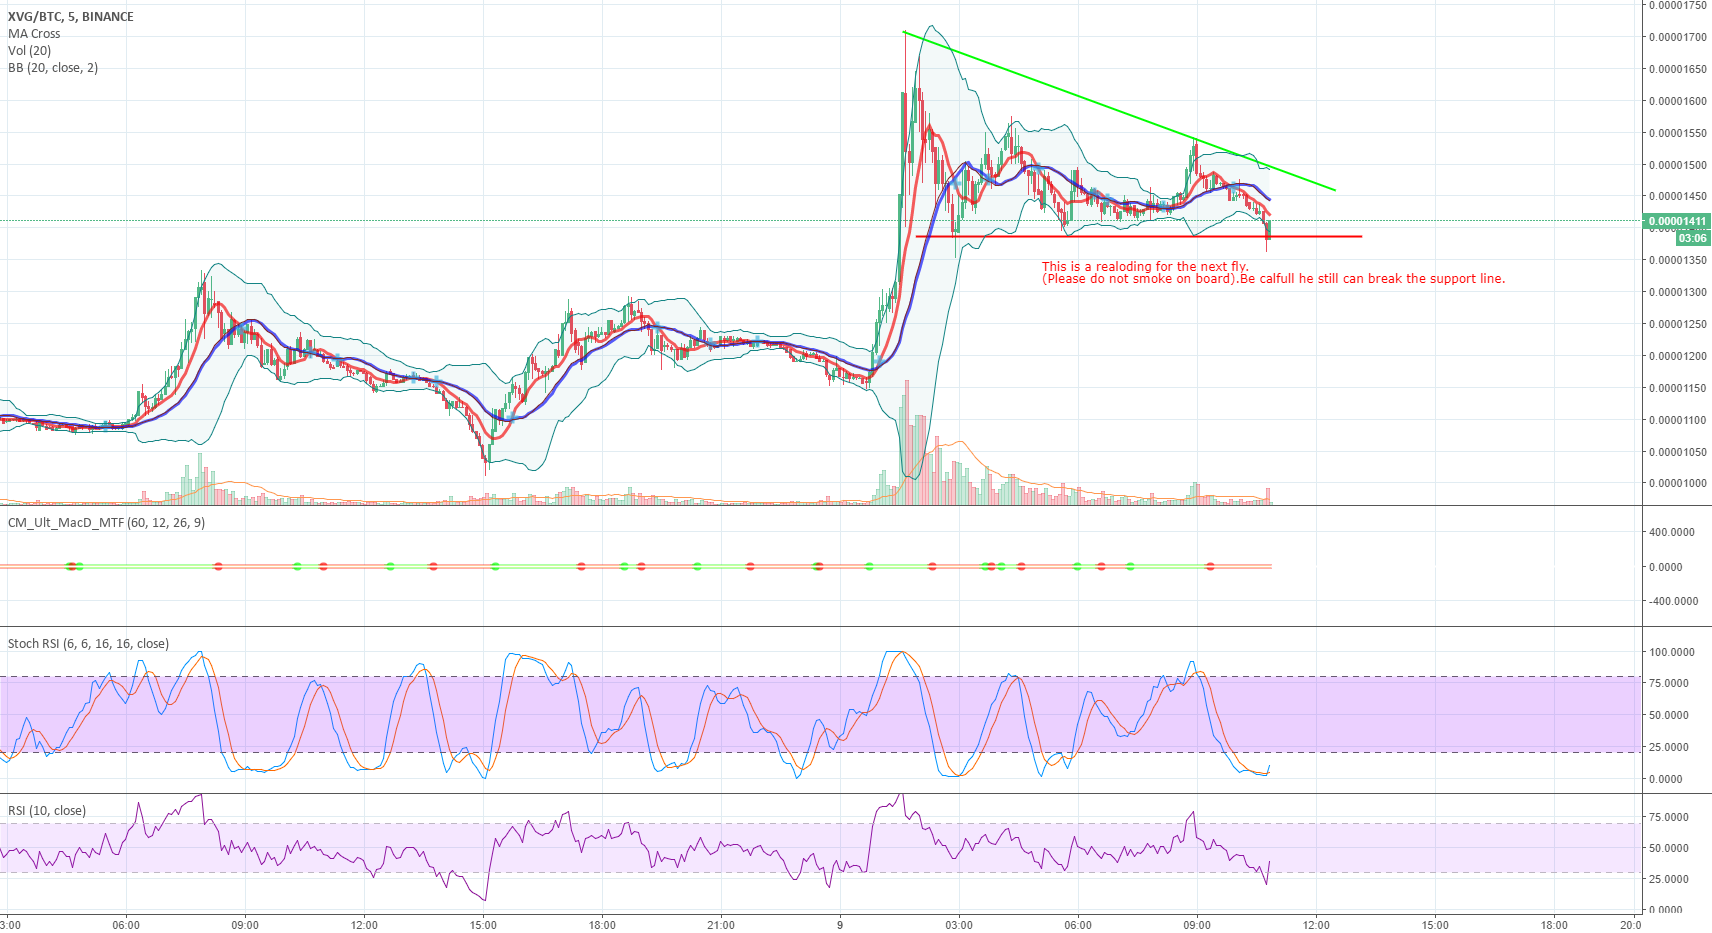 XVG - Let's see if we can go for the next fly.